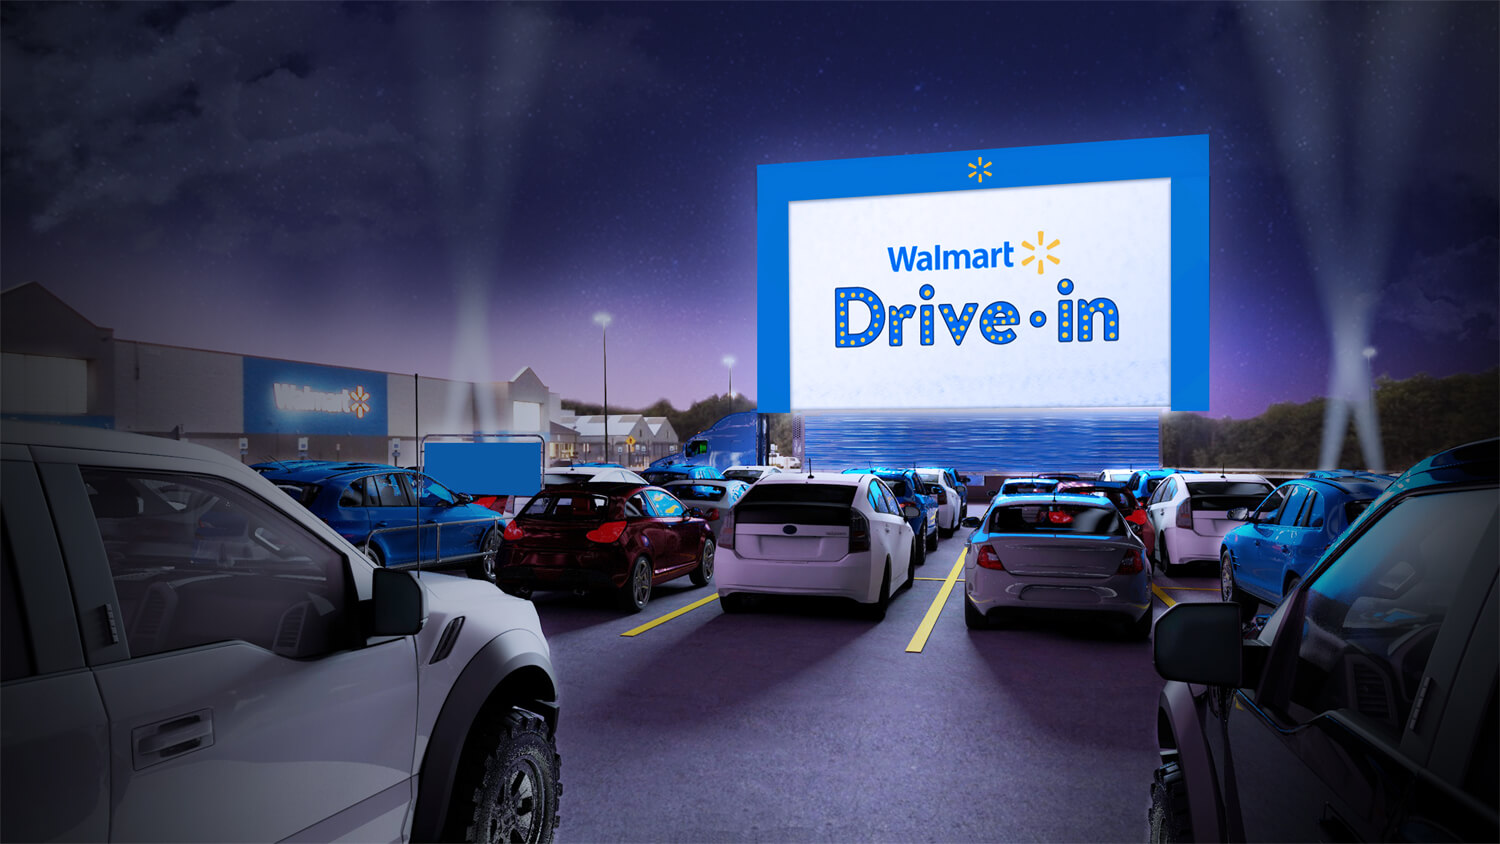 Walmart is transforming parking lots into makeshift drive-in theaters this summer